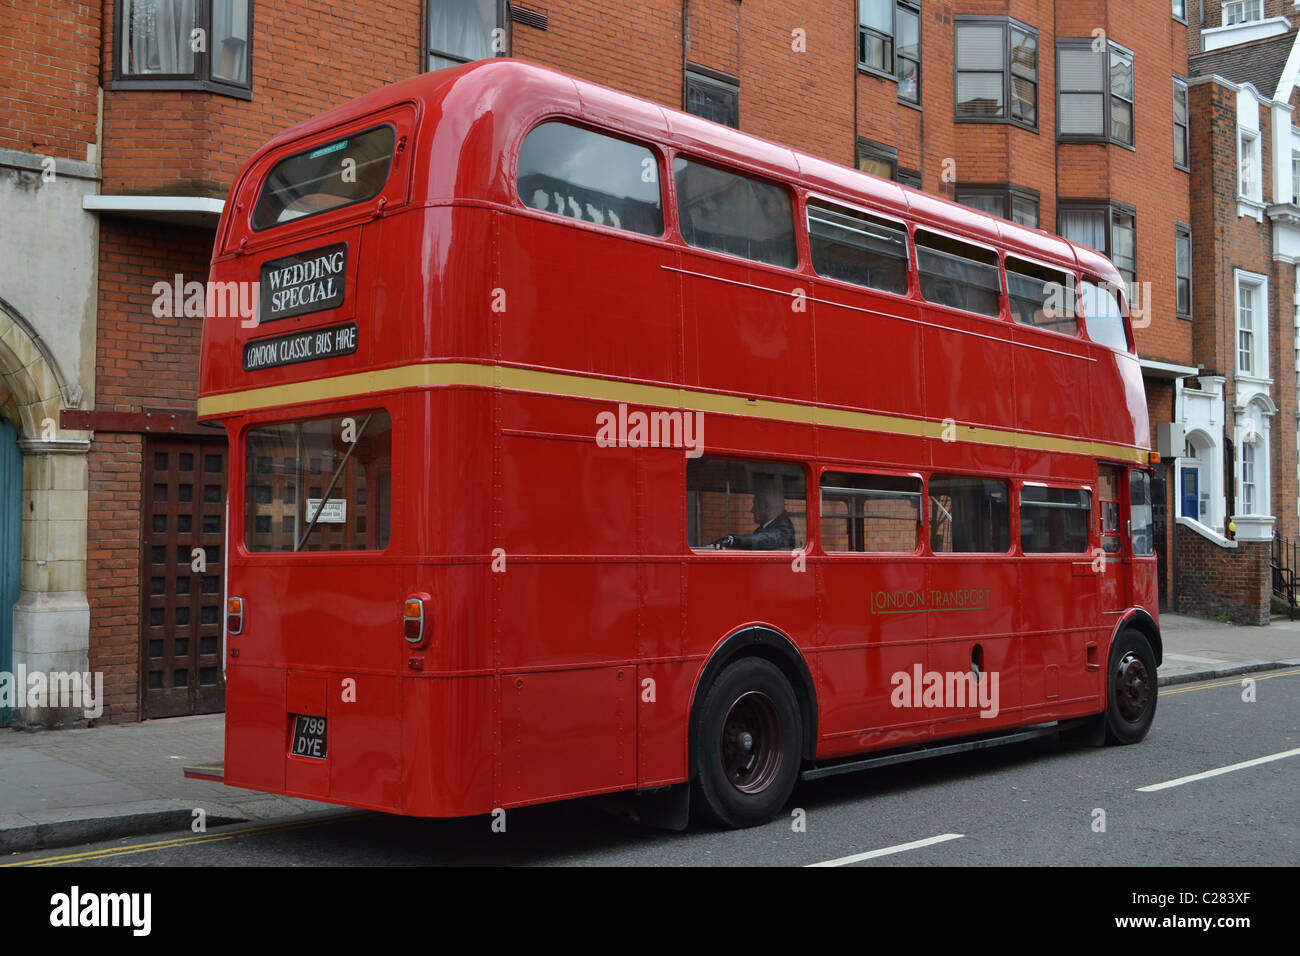 The Most Beloved Double Decker Bus Routemaster Now Used For Weddings Chelsea London UK ARTIFEX LUCIS